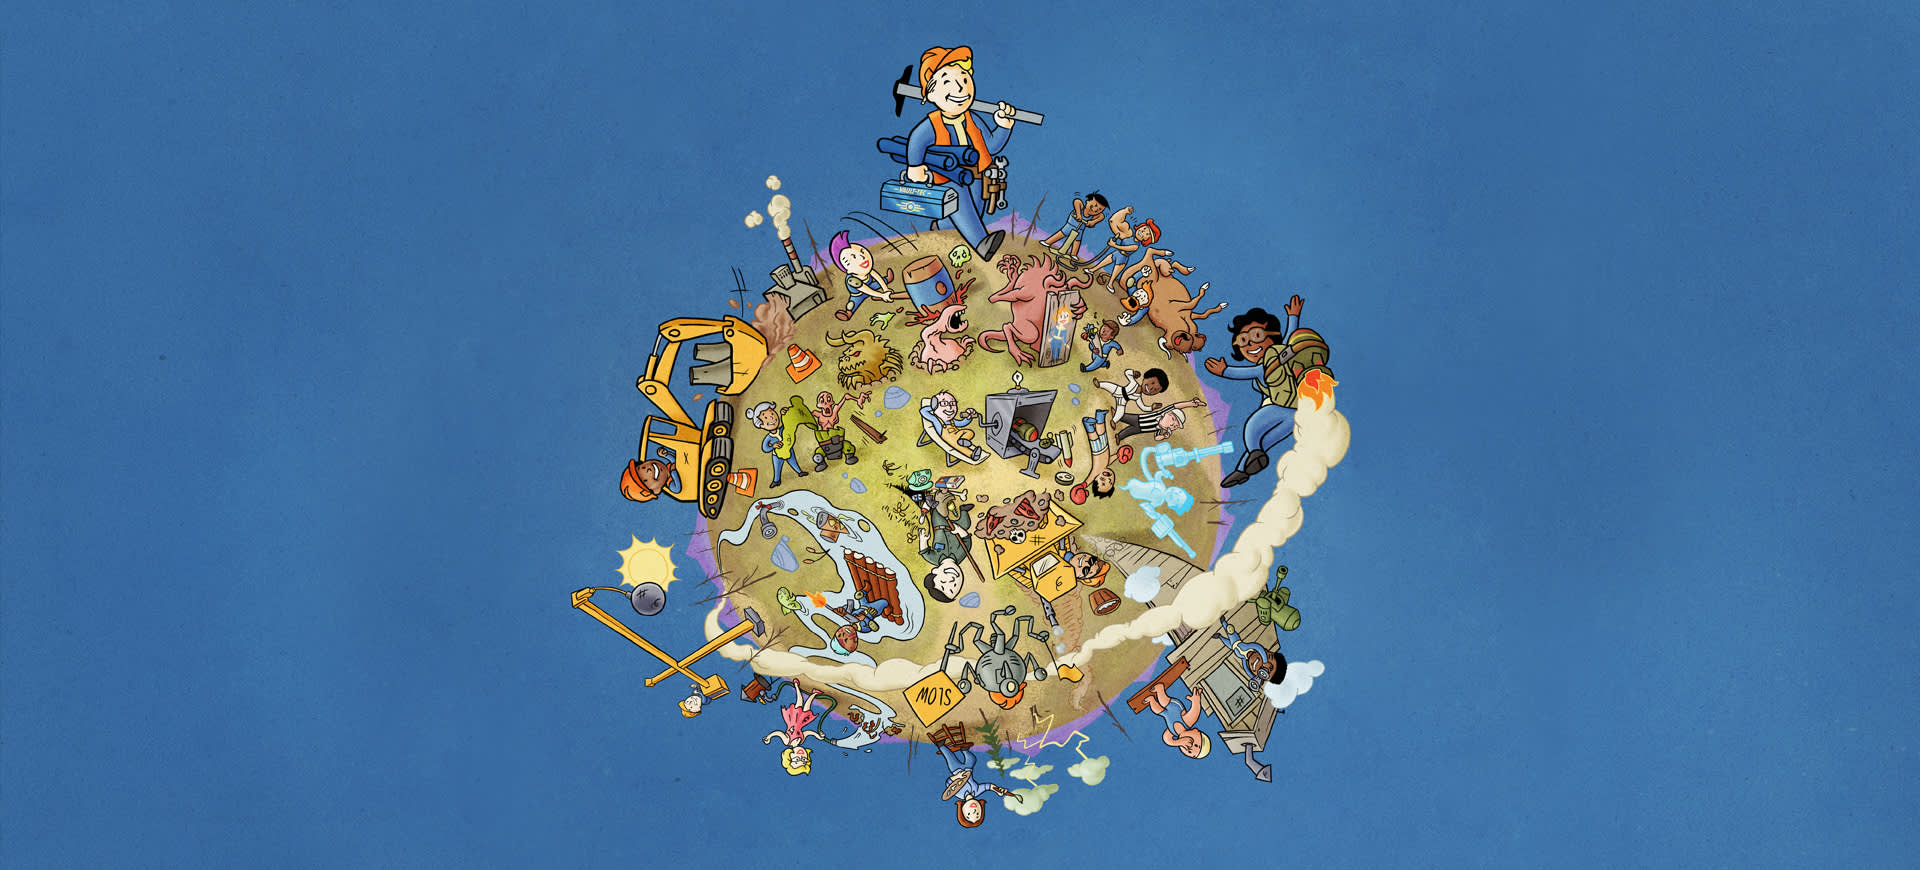 Fallout 76 - key art for Fallout Worlds, which shows a Vault Boy grinning and walking around a customizable world full of hijinx